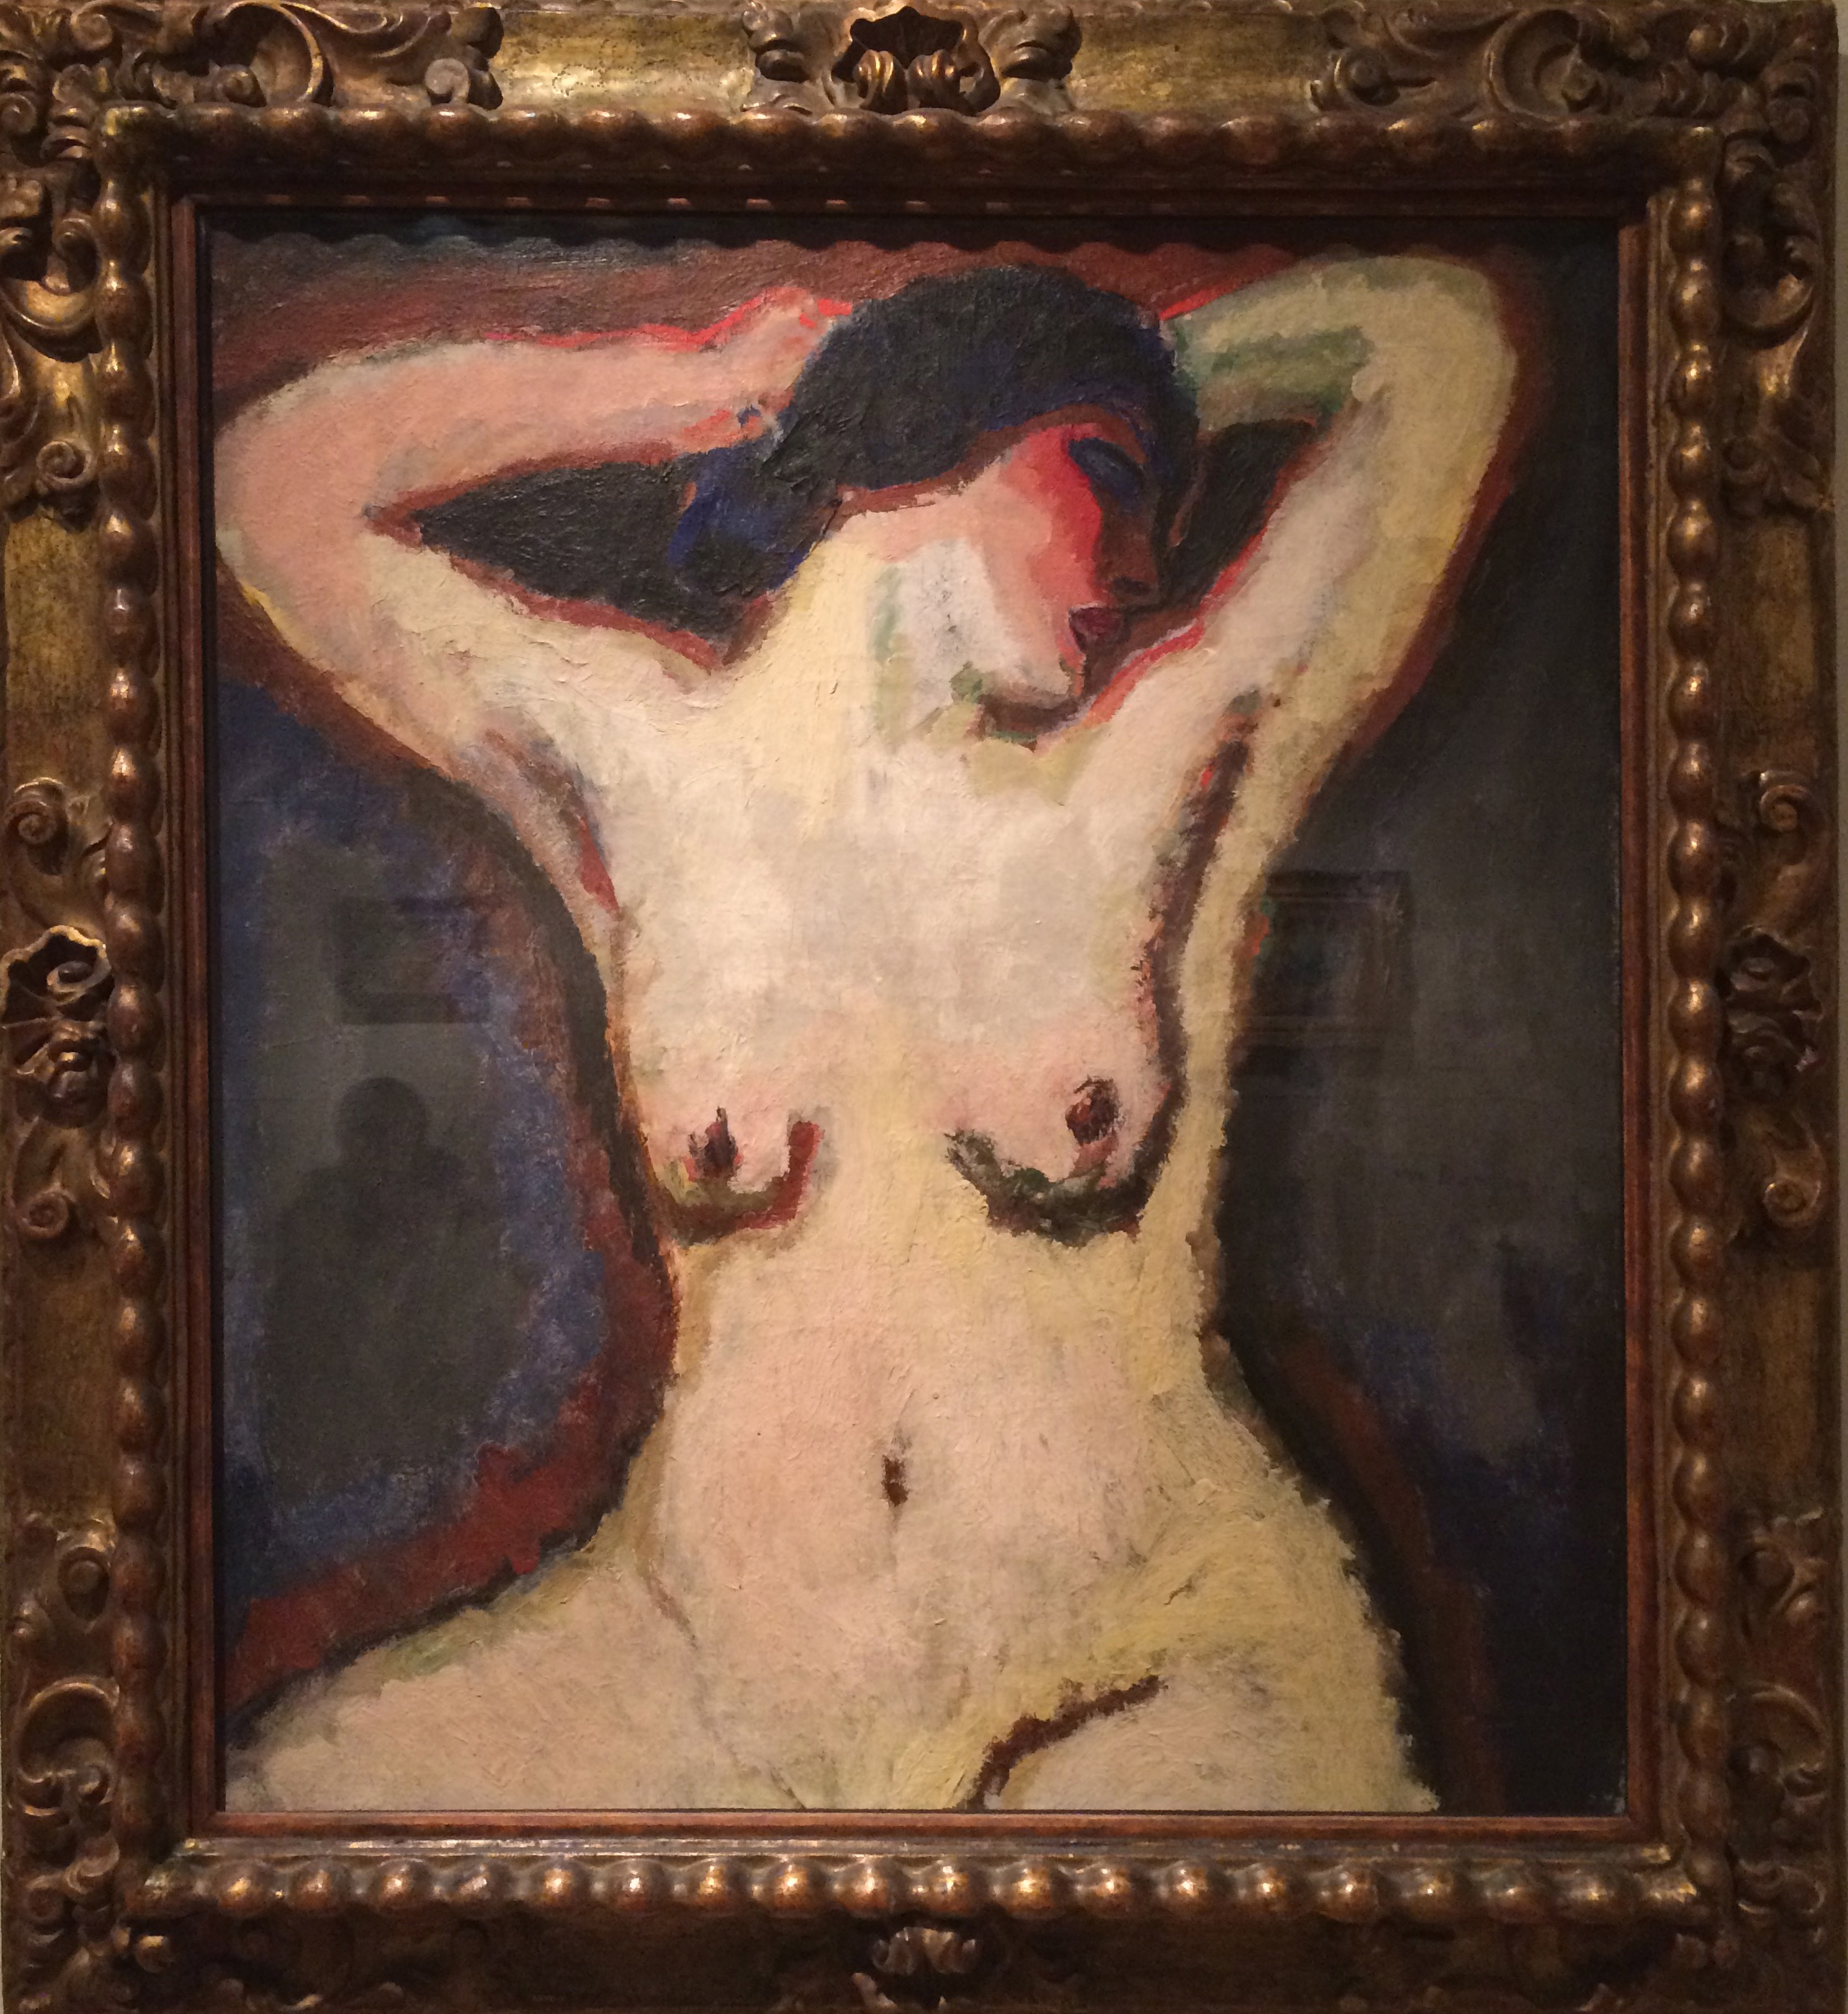 Kees van Dongen (1877 - 1968), Torso, The Idol 1905